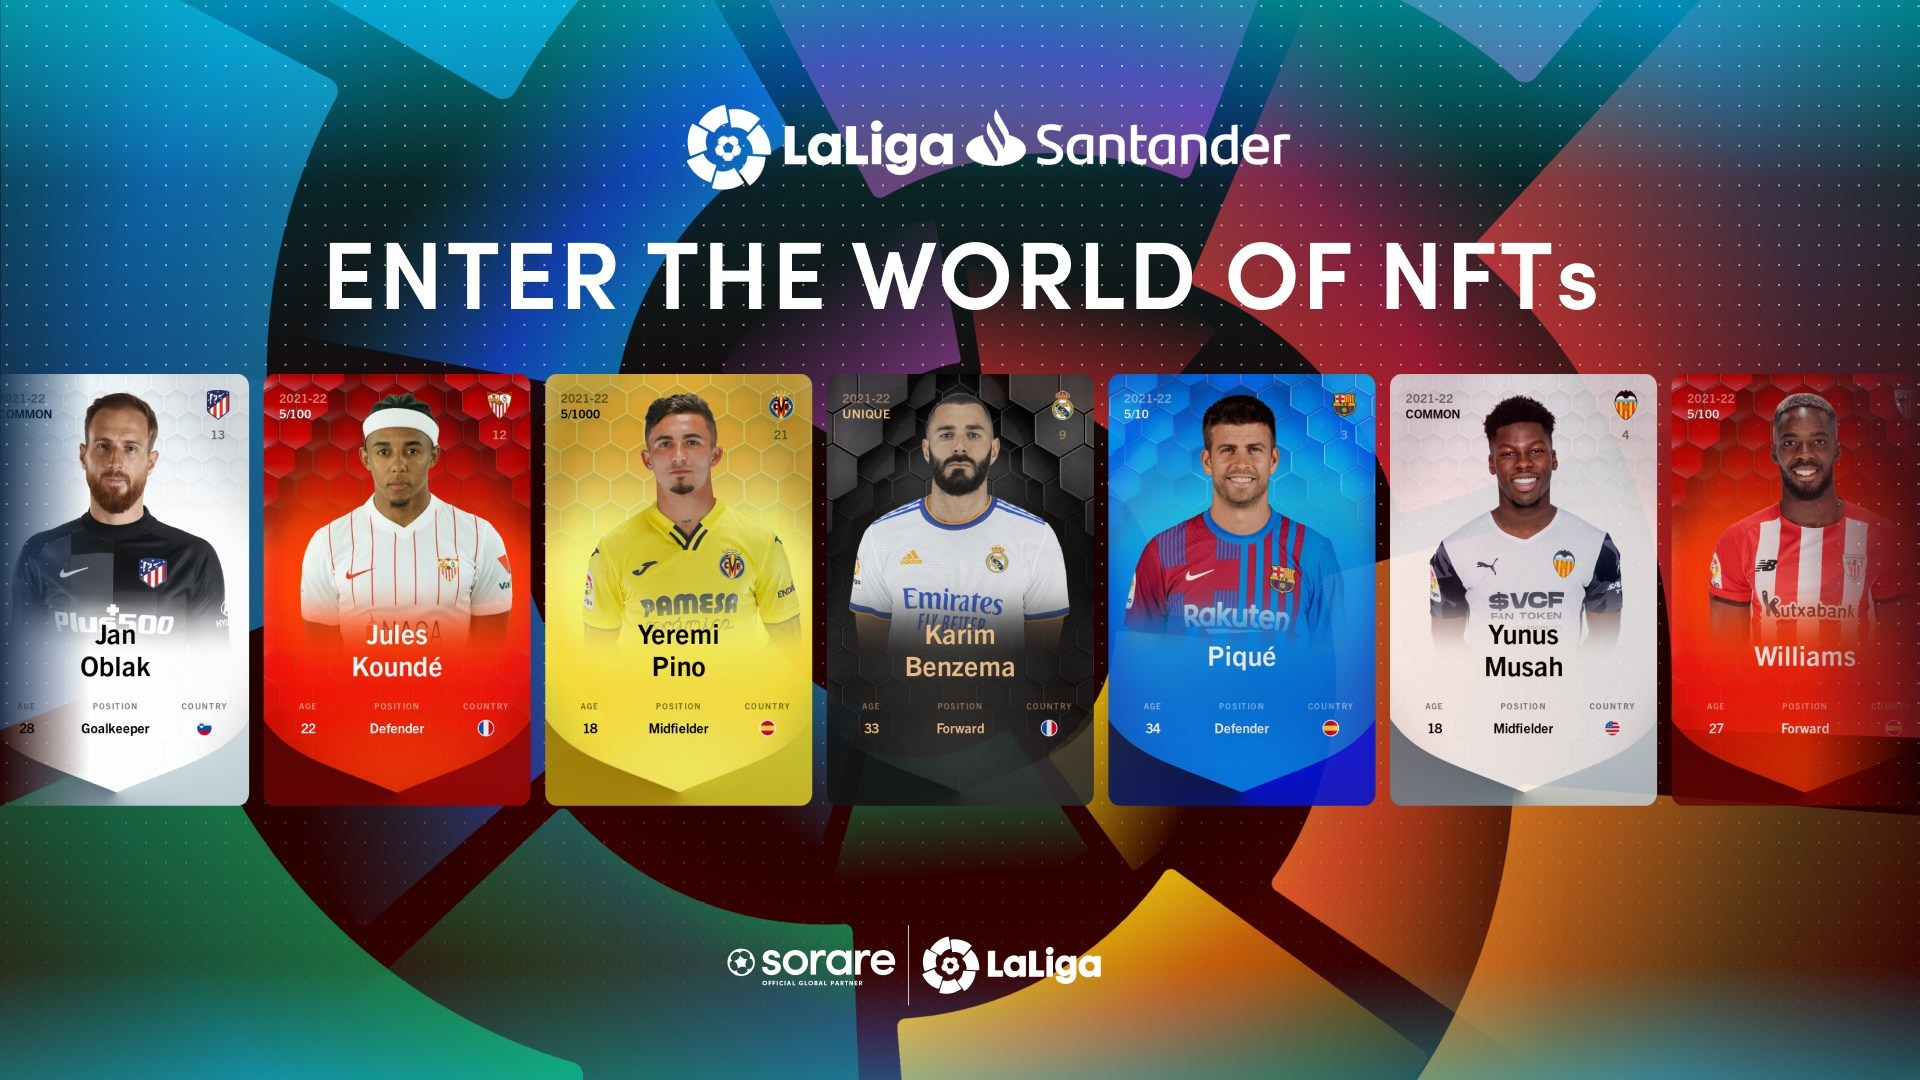 Spanish Soccer League LaLiga To Offer NFTs Of All Players